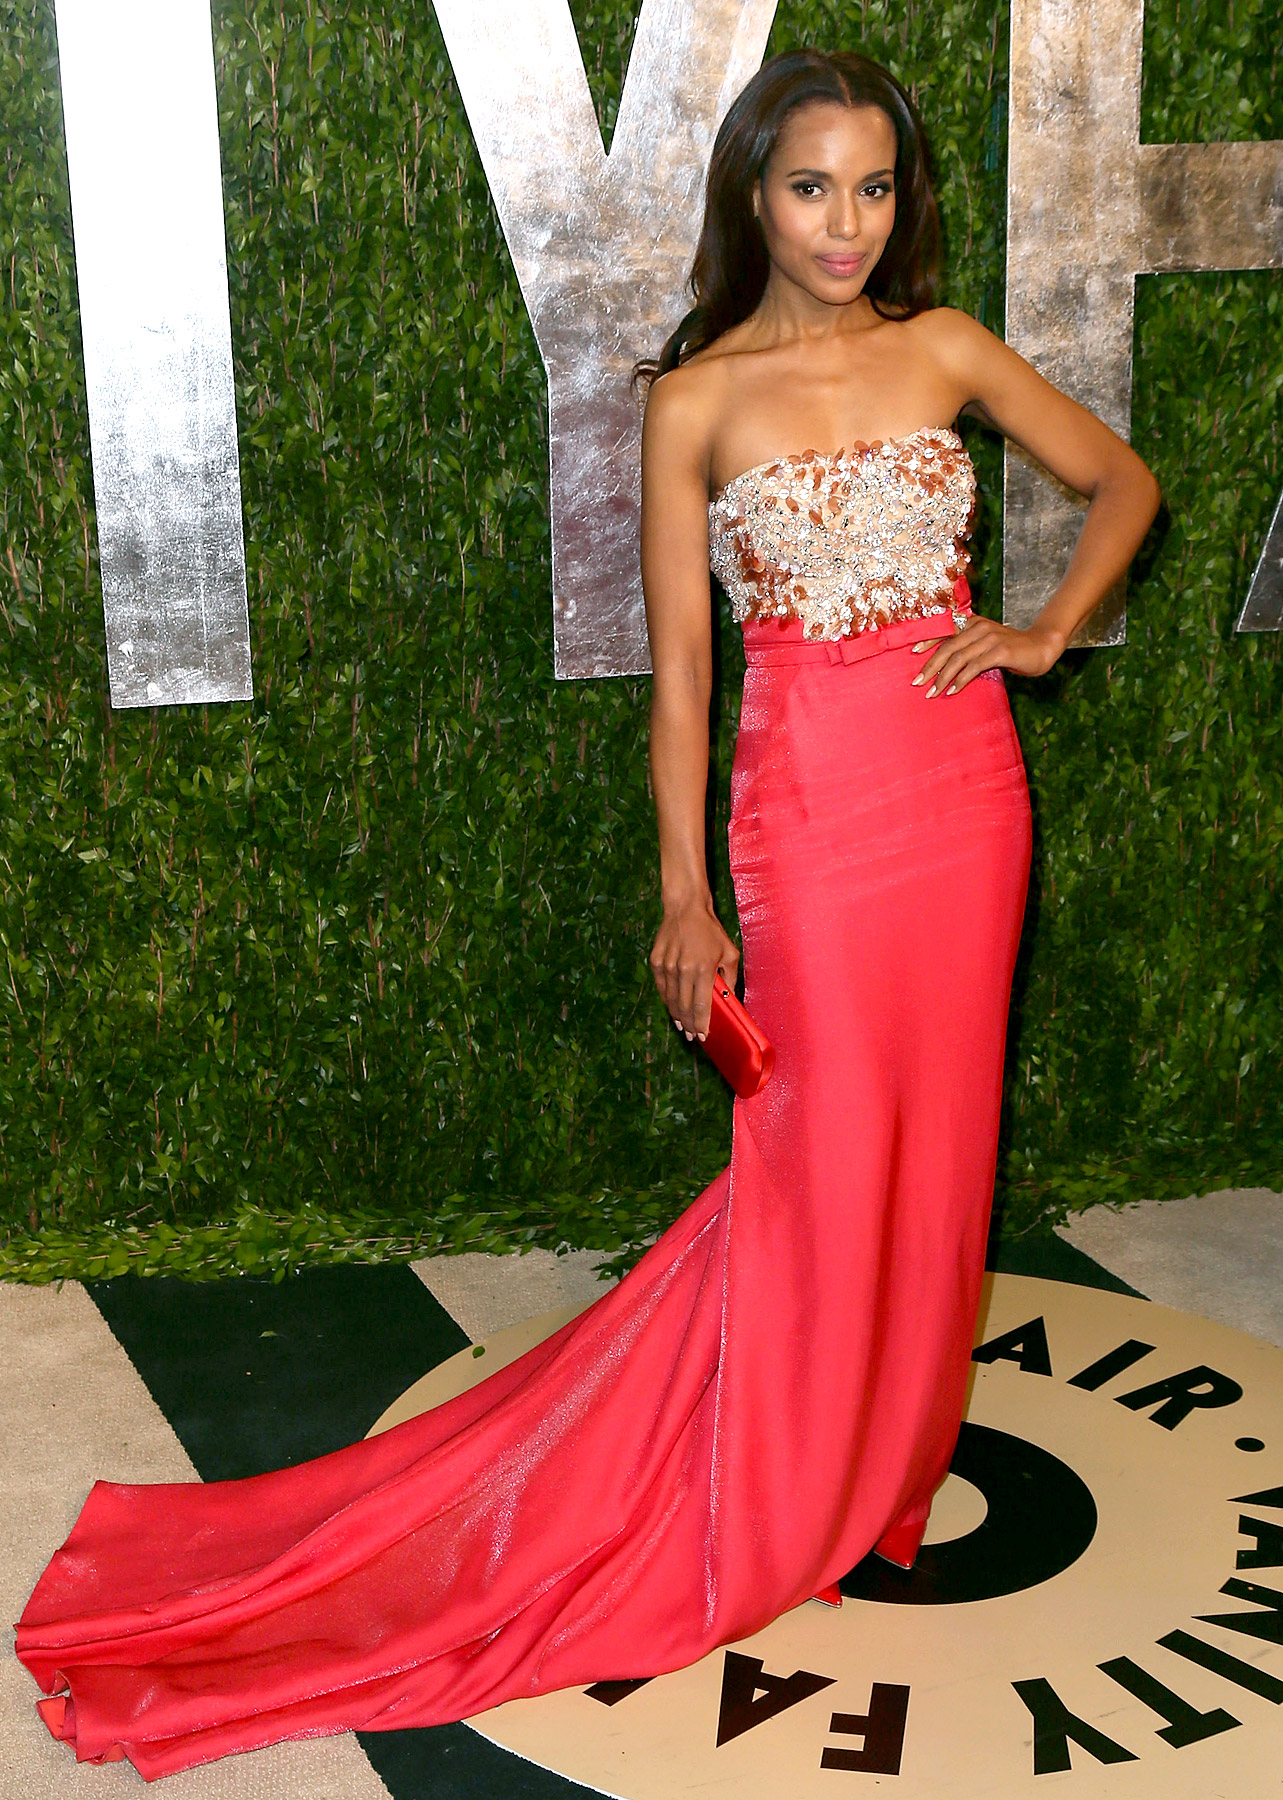 Washington stunned in a dark pink Miu Miu gown with beaded embellishments and red heels while attending the 2013 Vanity Fair Oscar Party at the Sunset Tower Hotel.